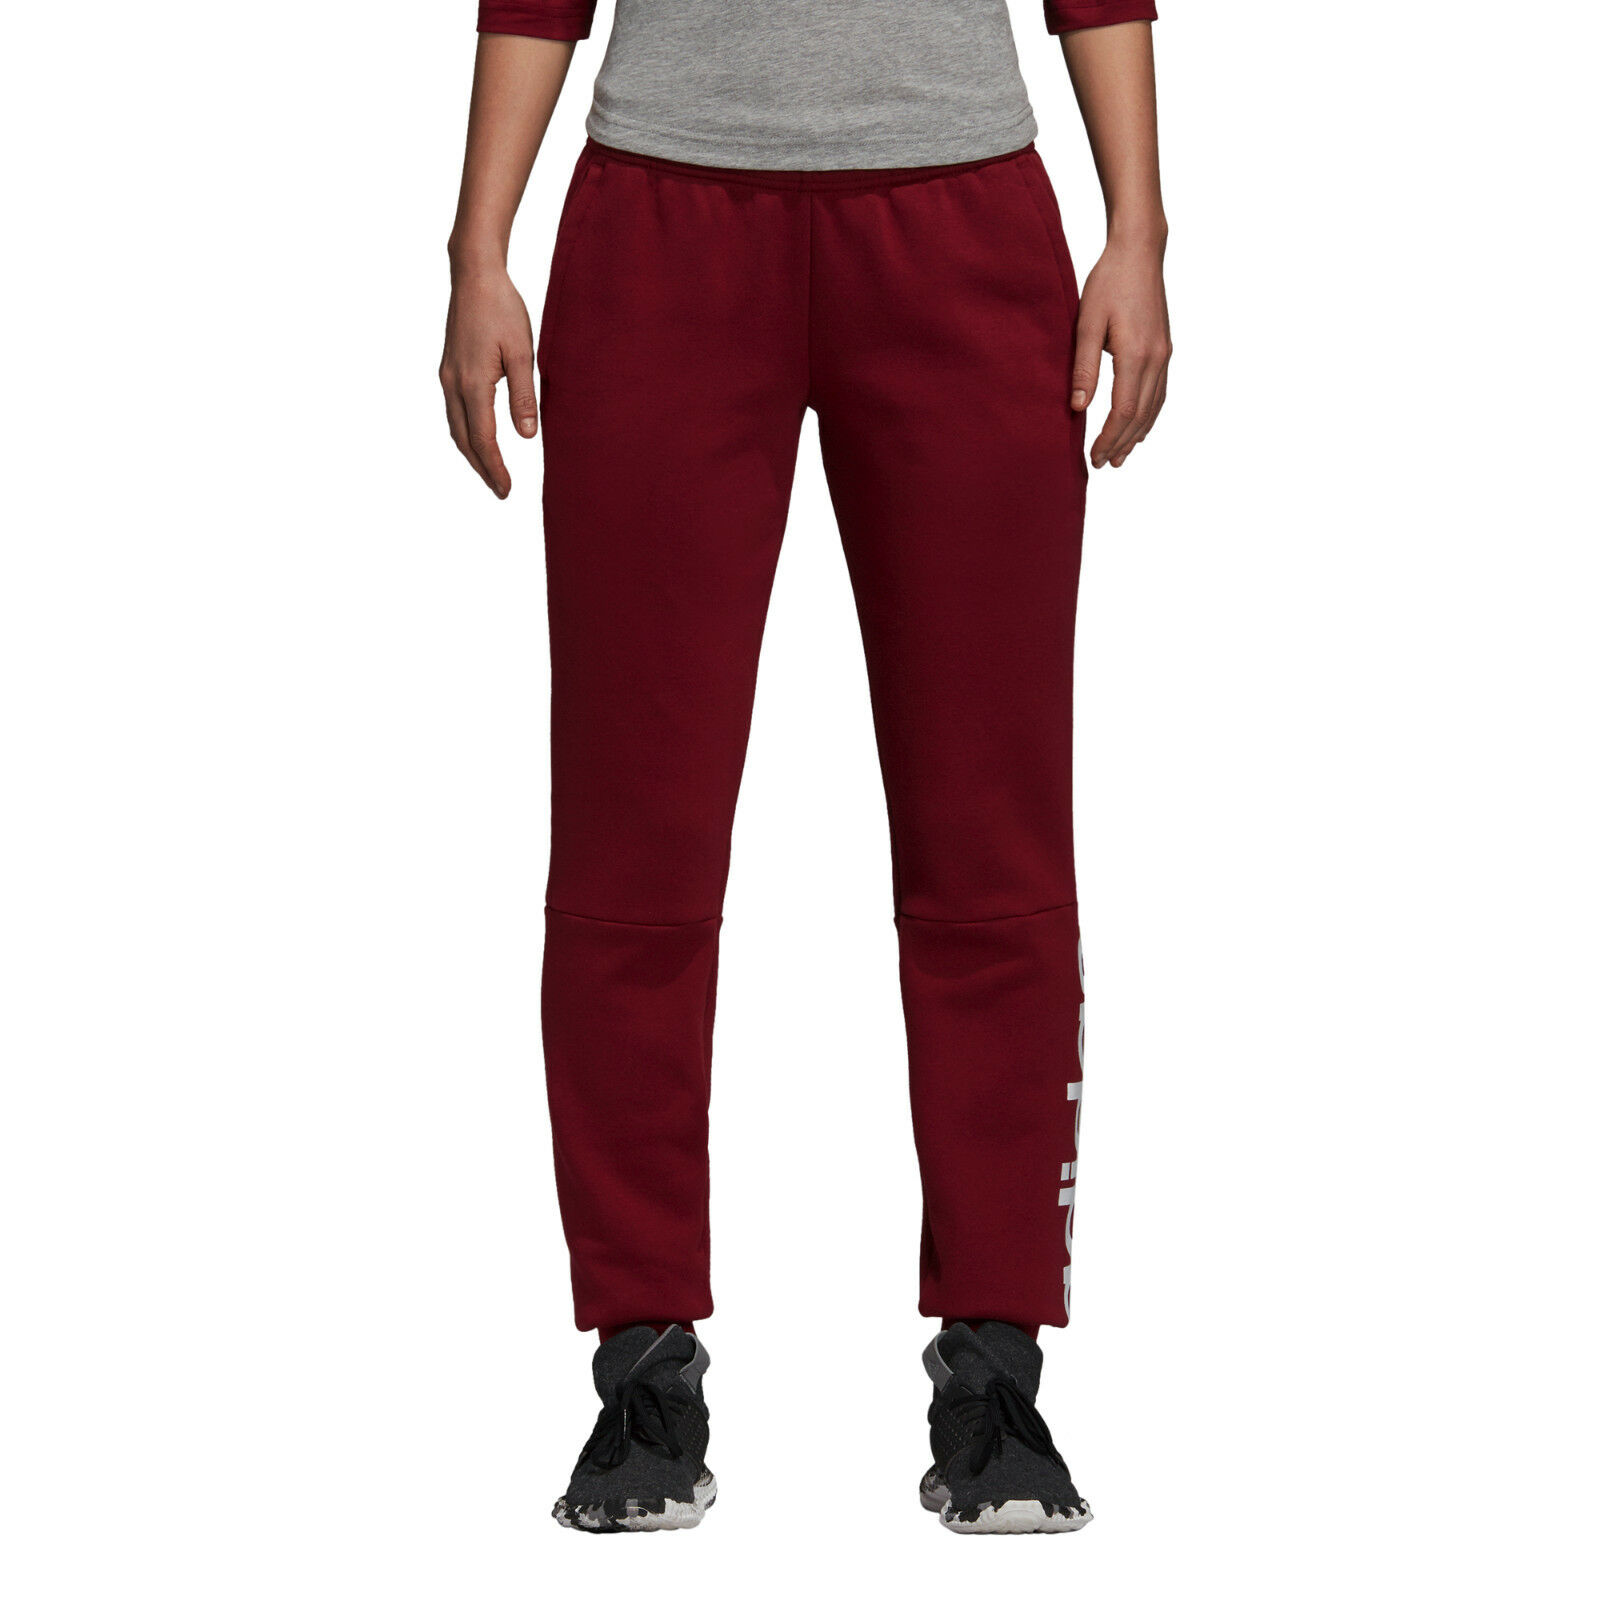 Adidas Women Pants Running Athletic Essentials Linear Trousers Training DI0109